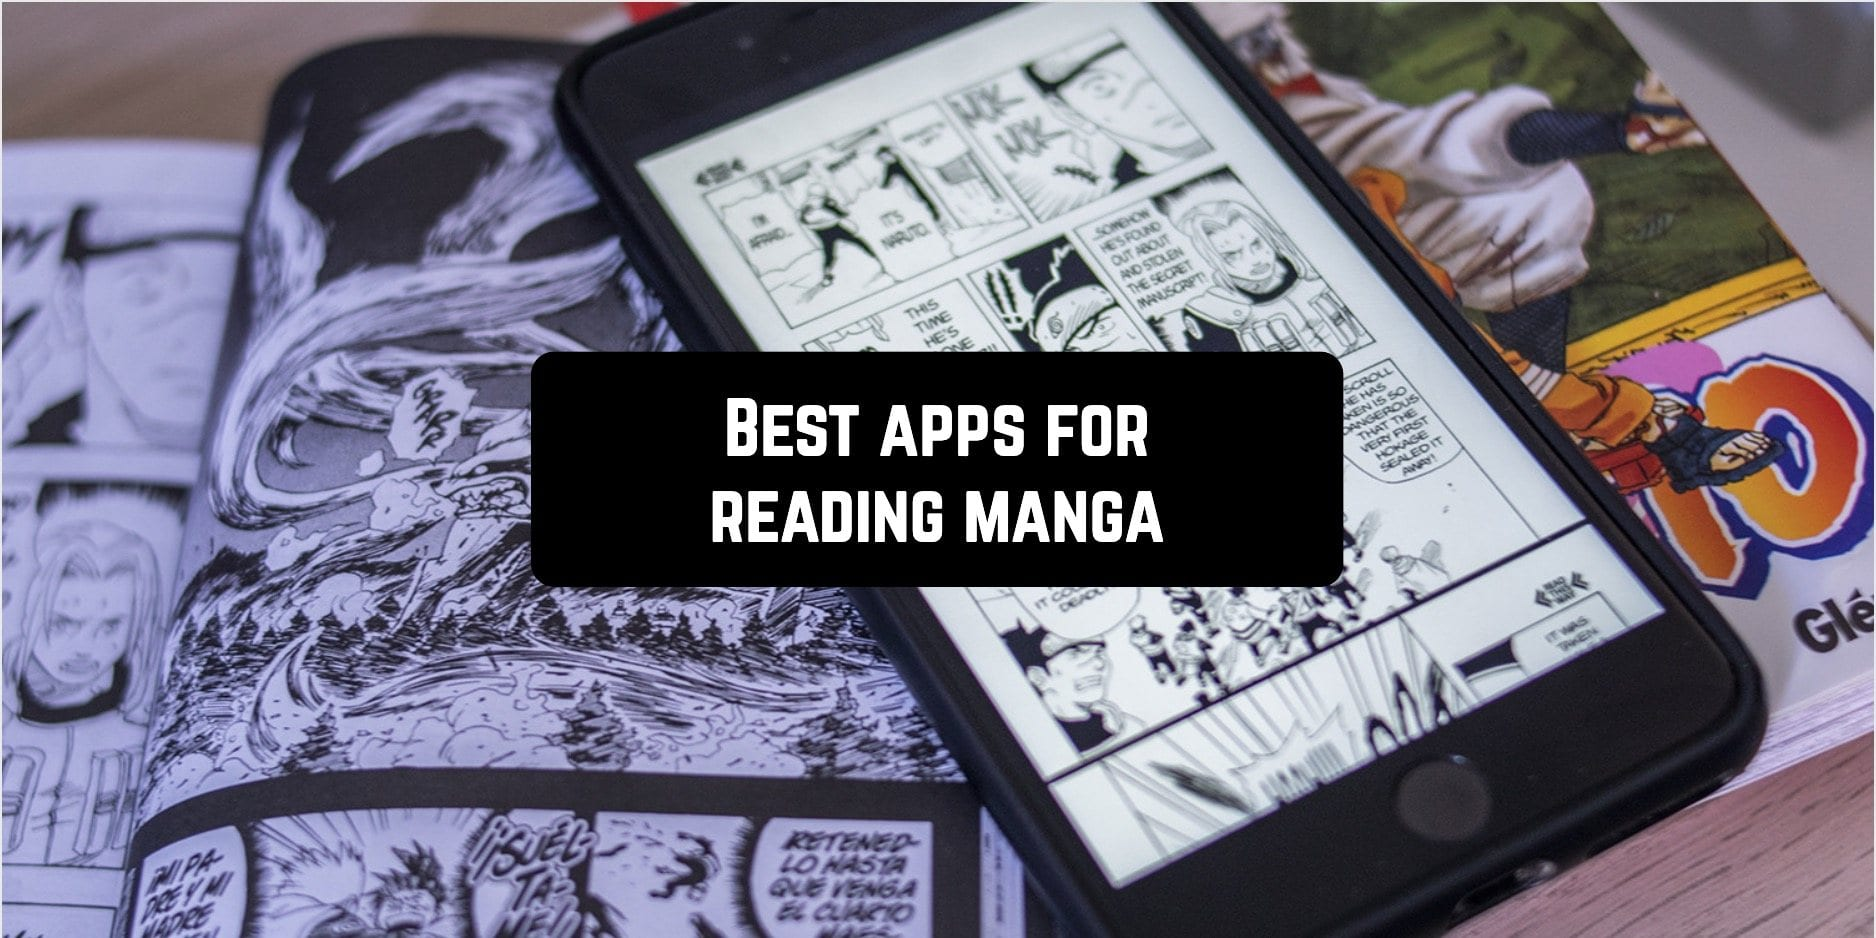 Best Android apps for reading manga